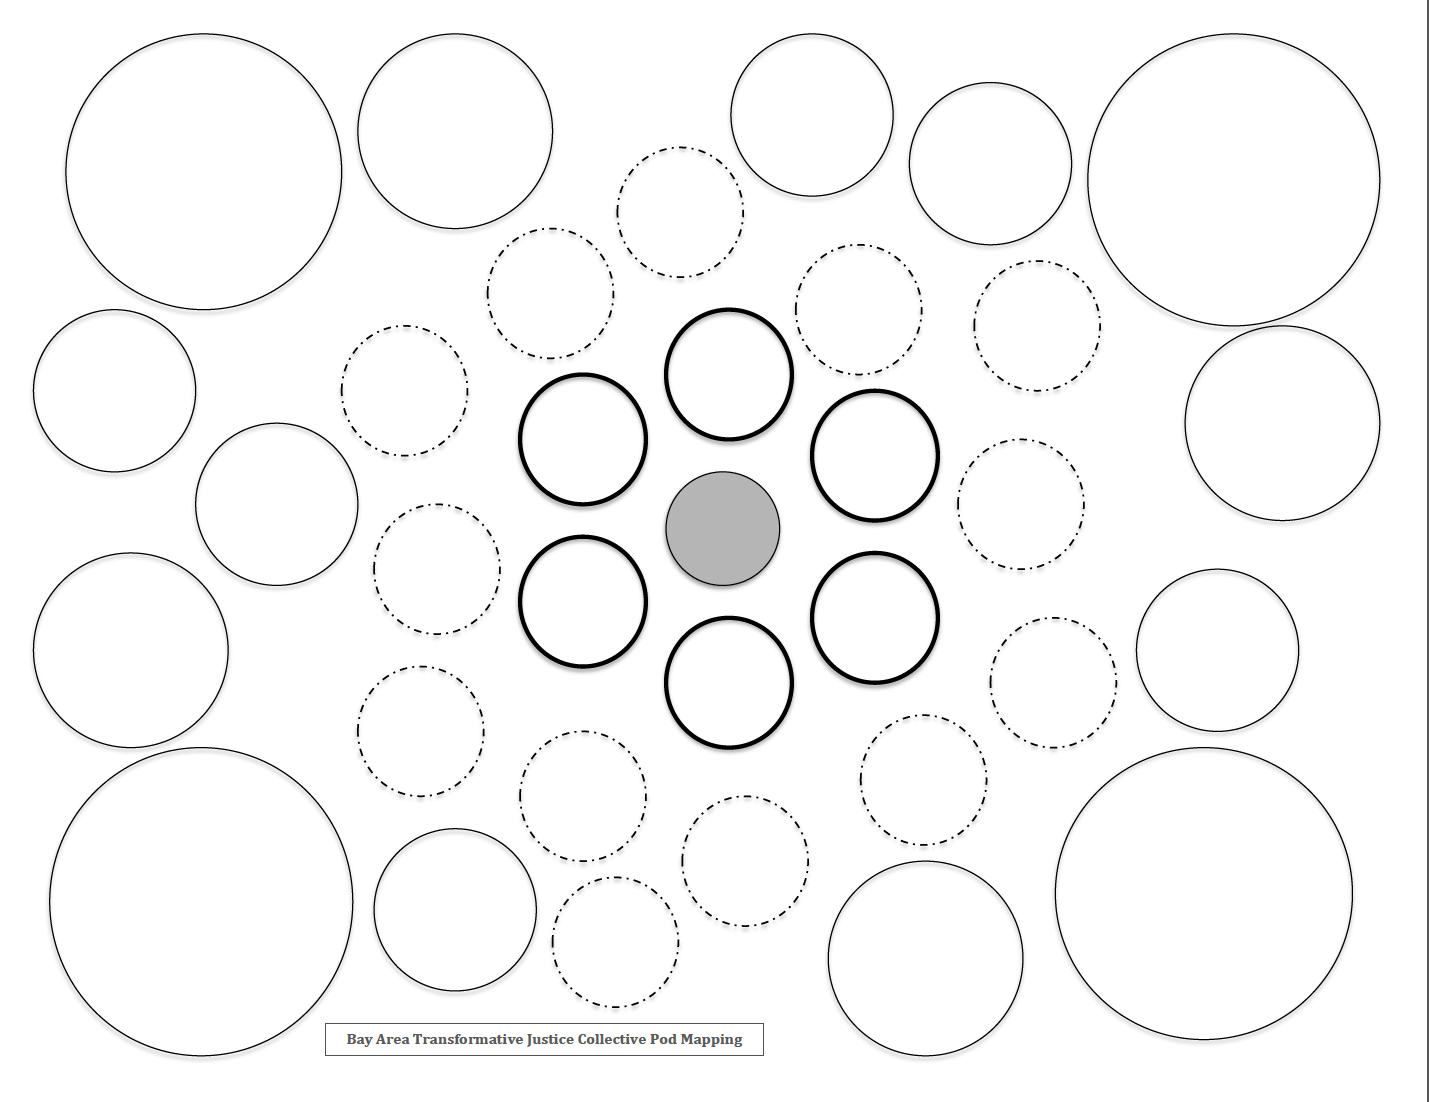 An image of Mia Mingus podmapping worksheet